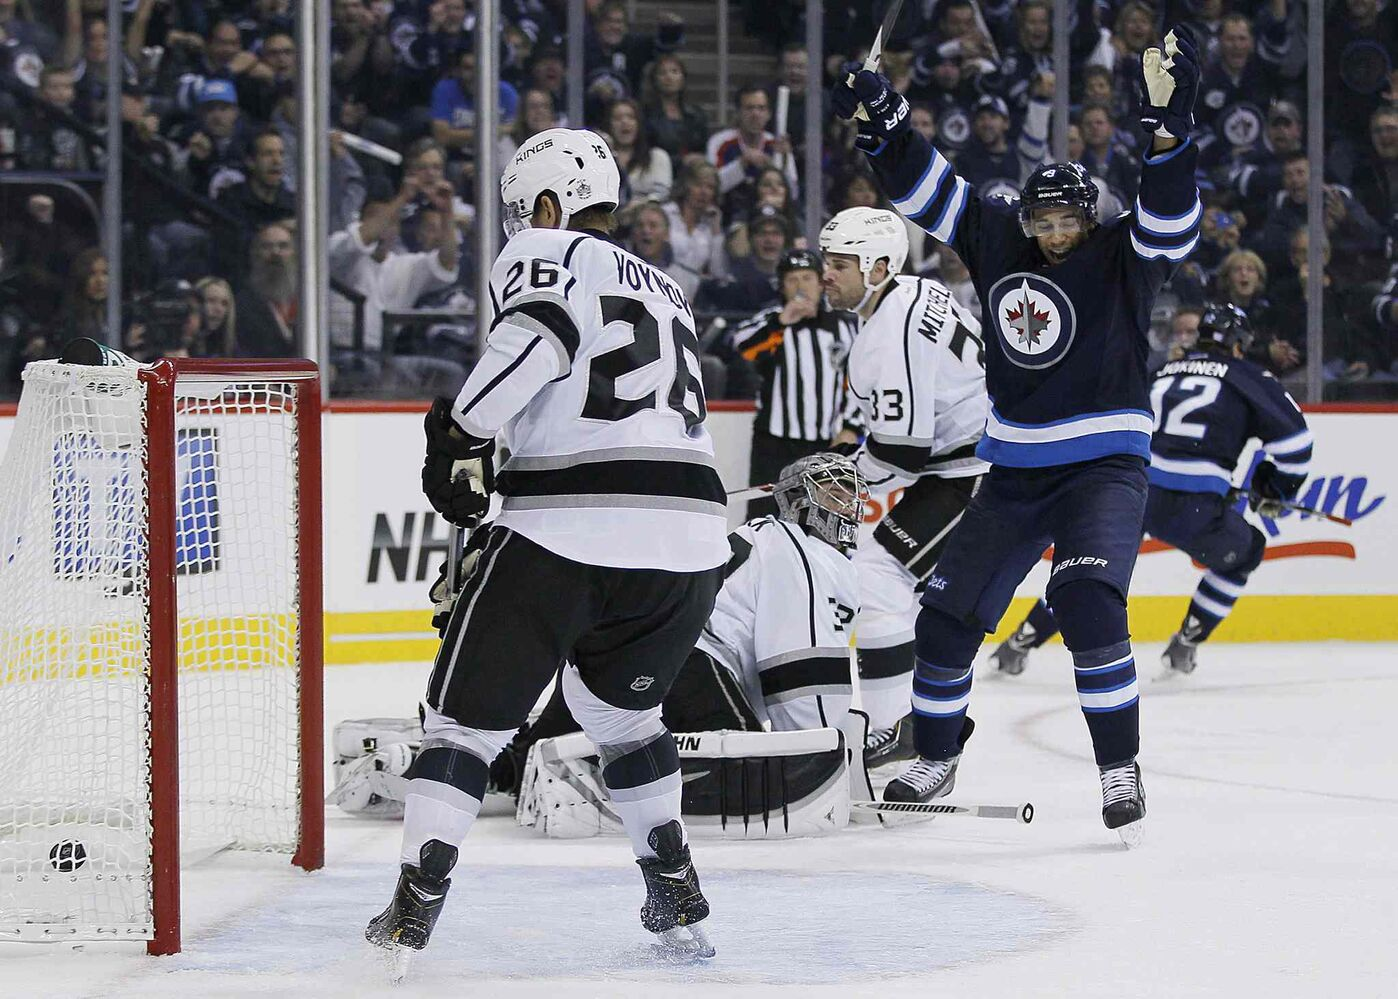 Winnipeg Jets' Evander Kane (9) and Olli Jokinen (12) celebrate Jokinen's goal against the Los Angeles Kings during the second period.